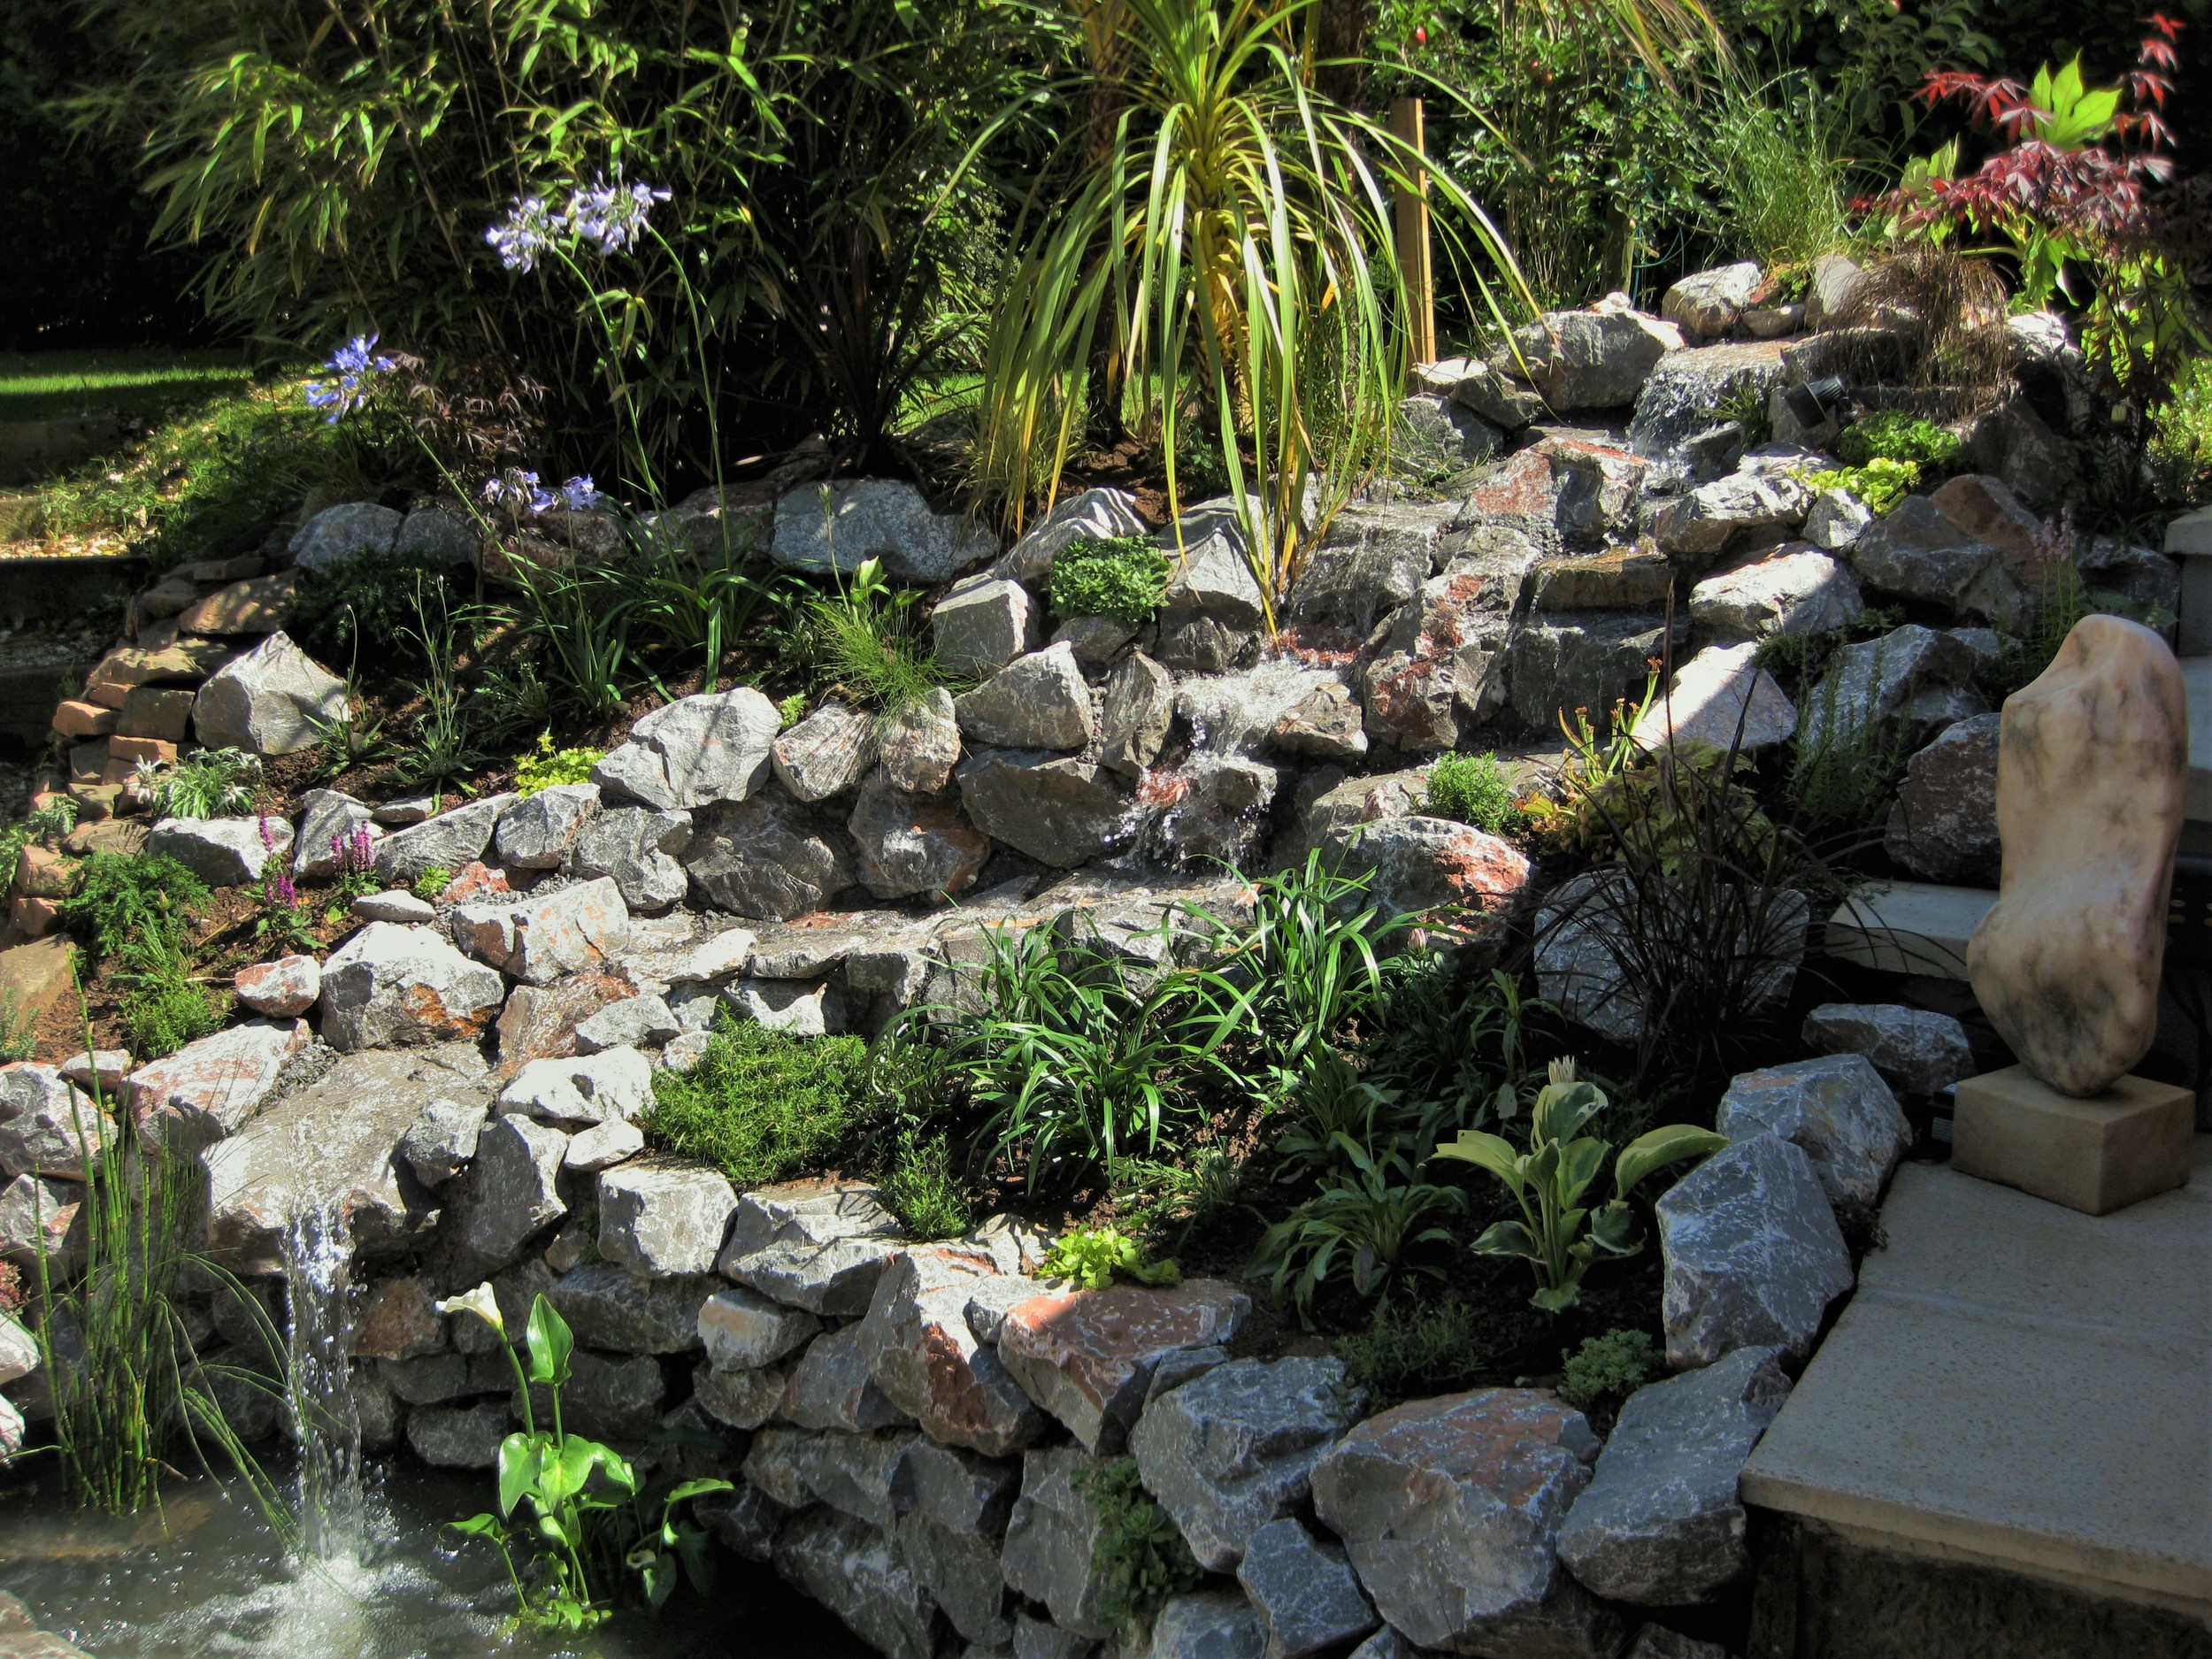 The finished waterscape, tumbling and cascading down before carving into the small fish pond at the bottom.